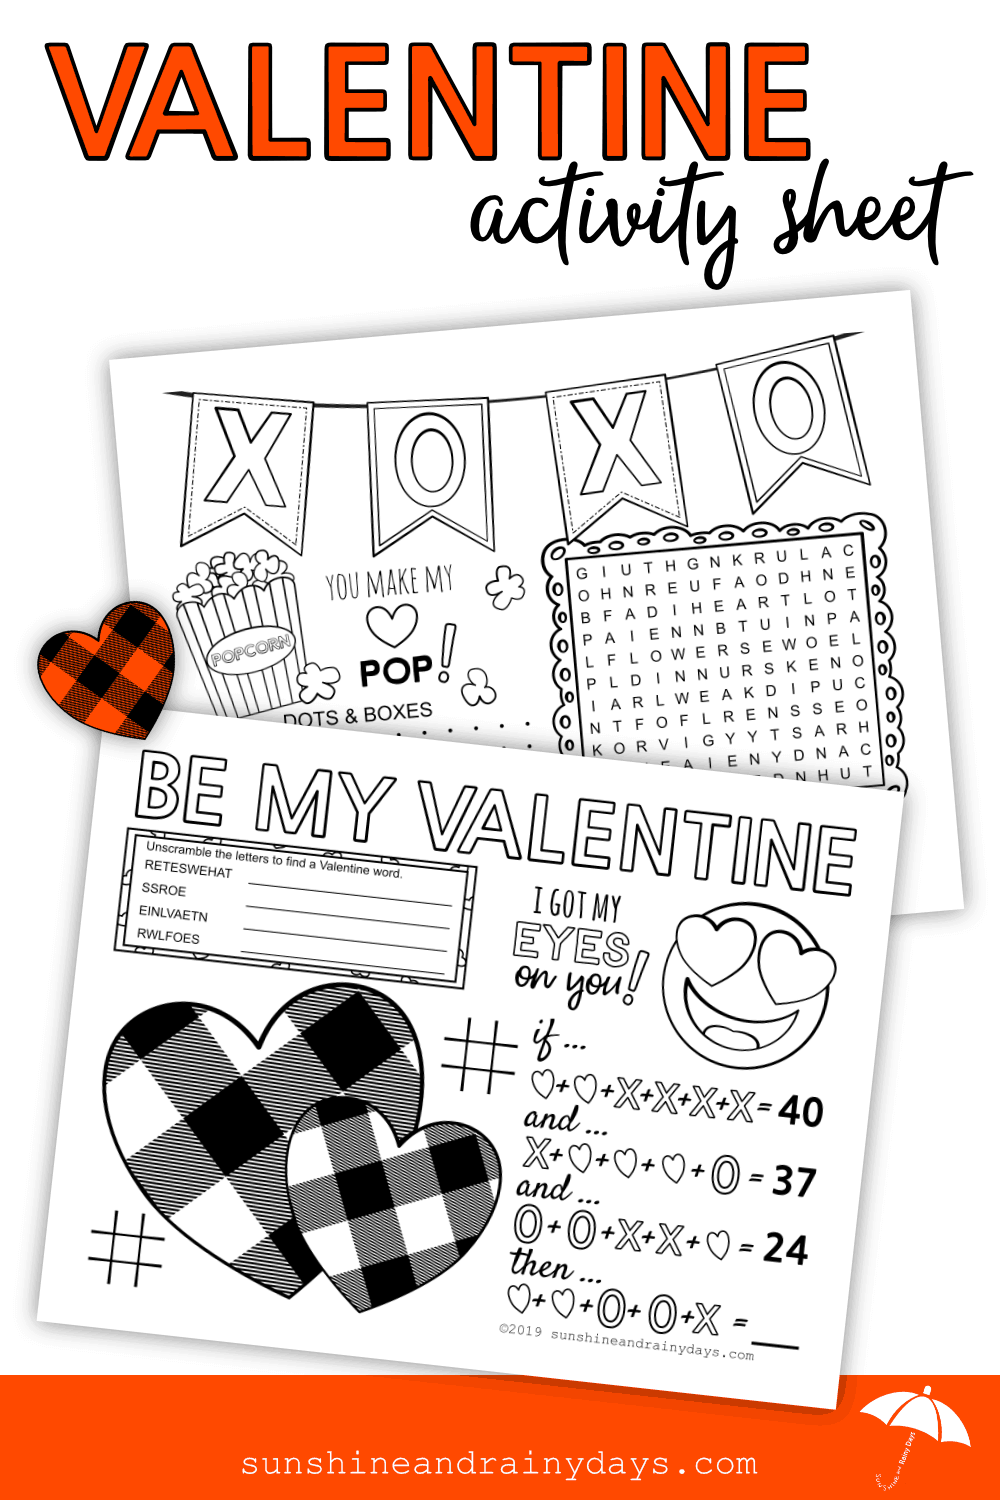 Valentine Activity Sheet